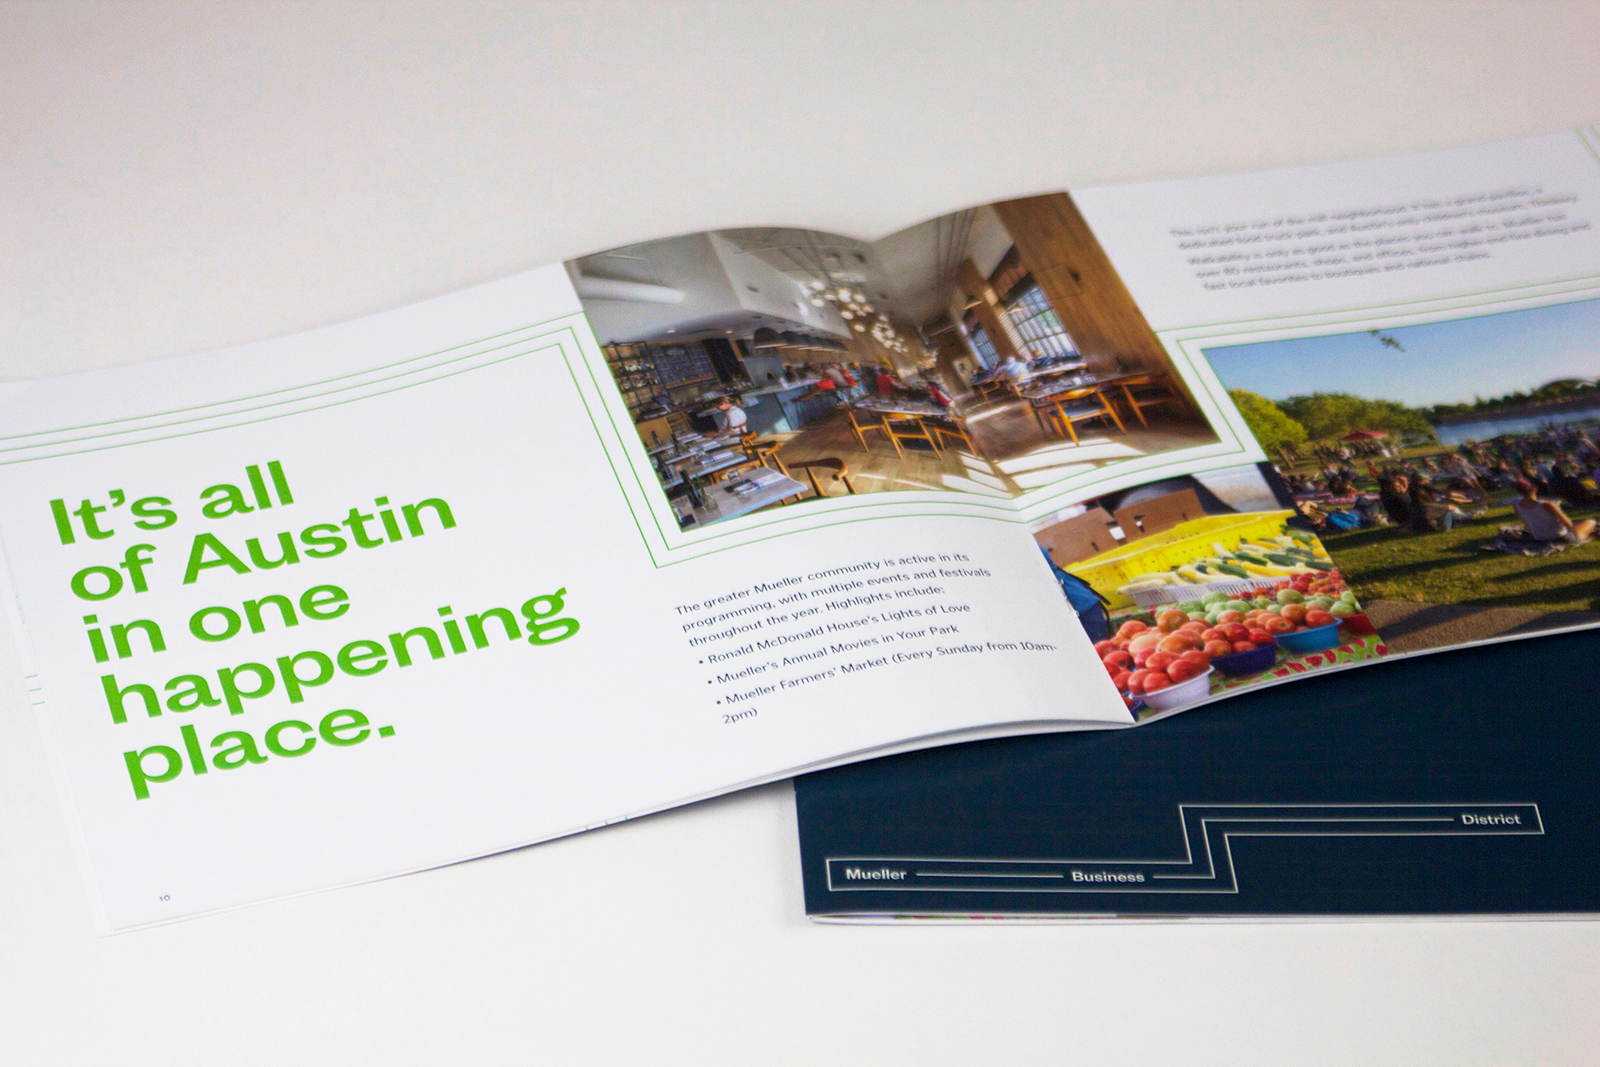 """A Mueller Business District brochure open to a page that reads """"It's all of Austin in one happening place."""""""